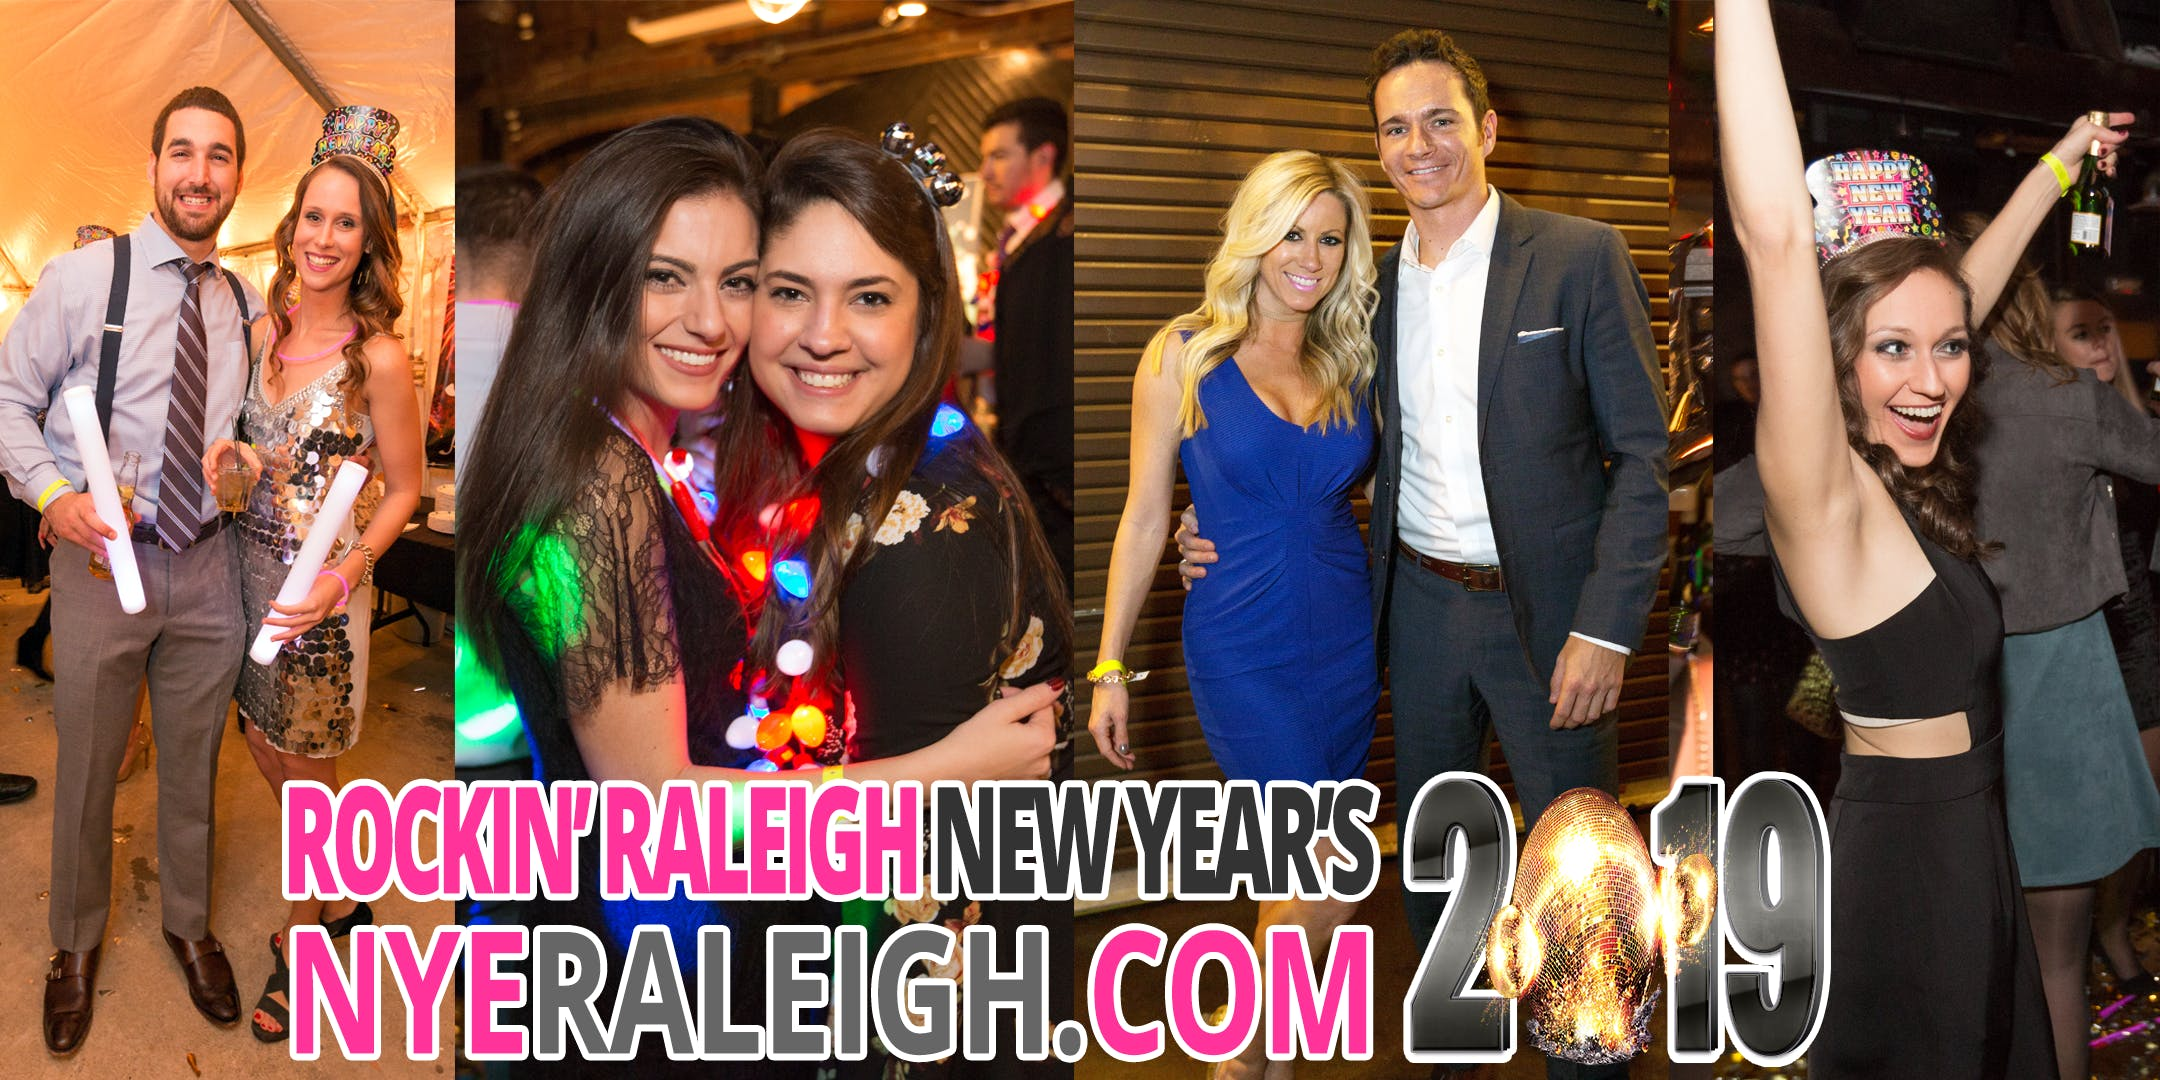 NYERaleigh.com - Rockin' Raleigh New Year's Eve, Raleigh ...